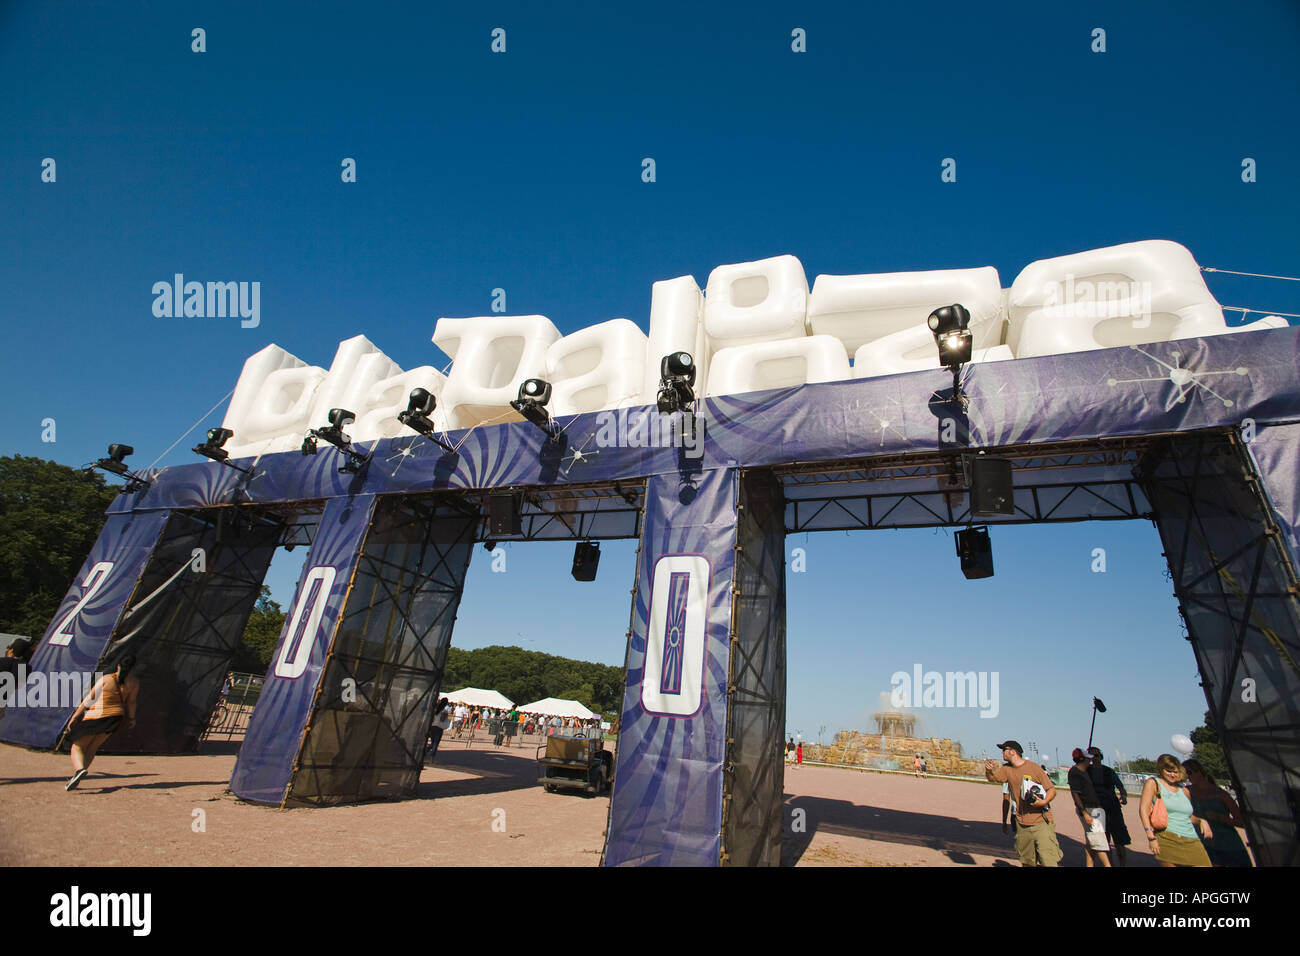 ILLINOIS Chicago Inflatable entrance to Lollapalooza musical concert in Grant Park near Buckingham Fountain - Stock Image